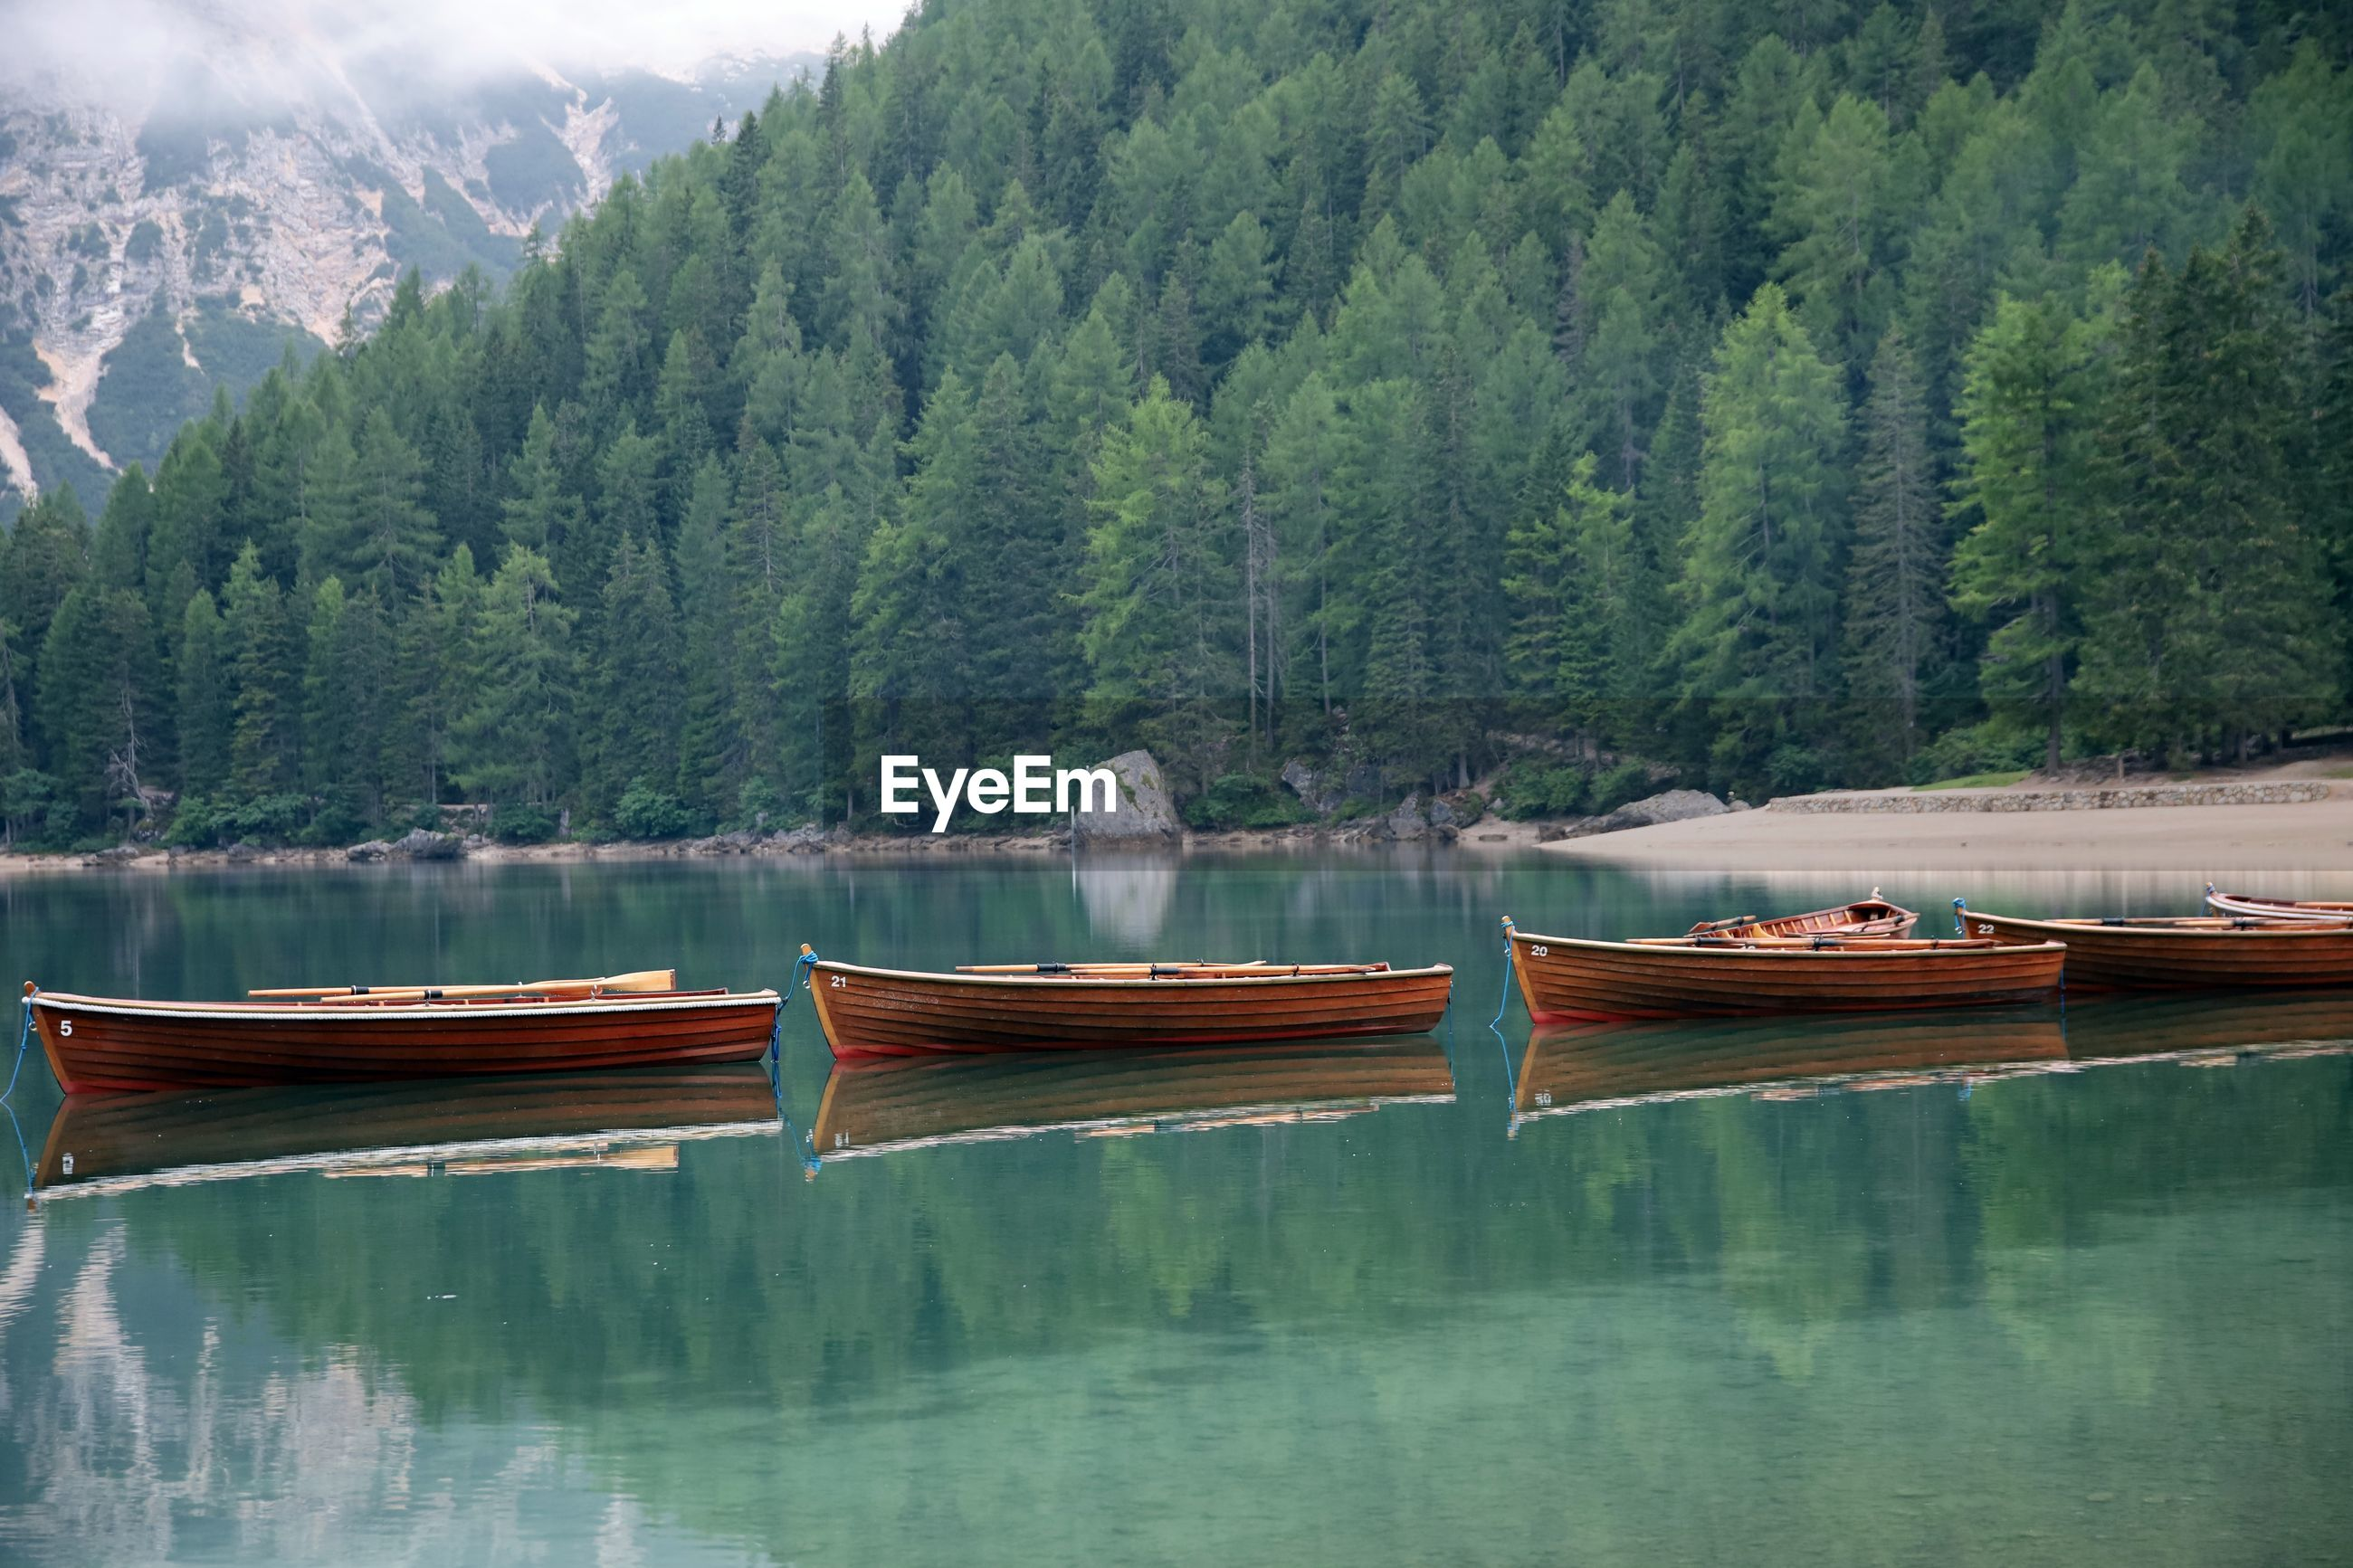 BOATS MOORED BY LAKE AGAINST TREES